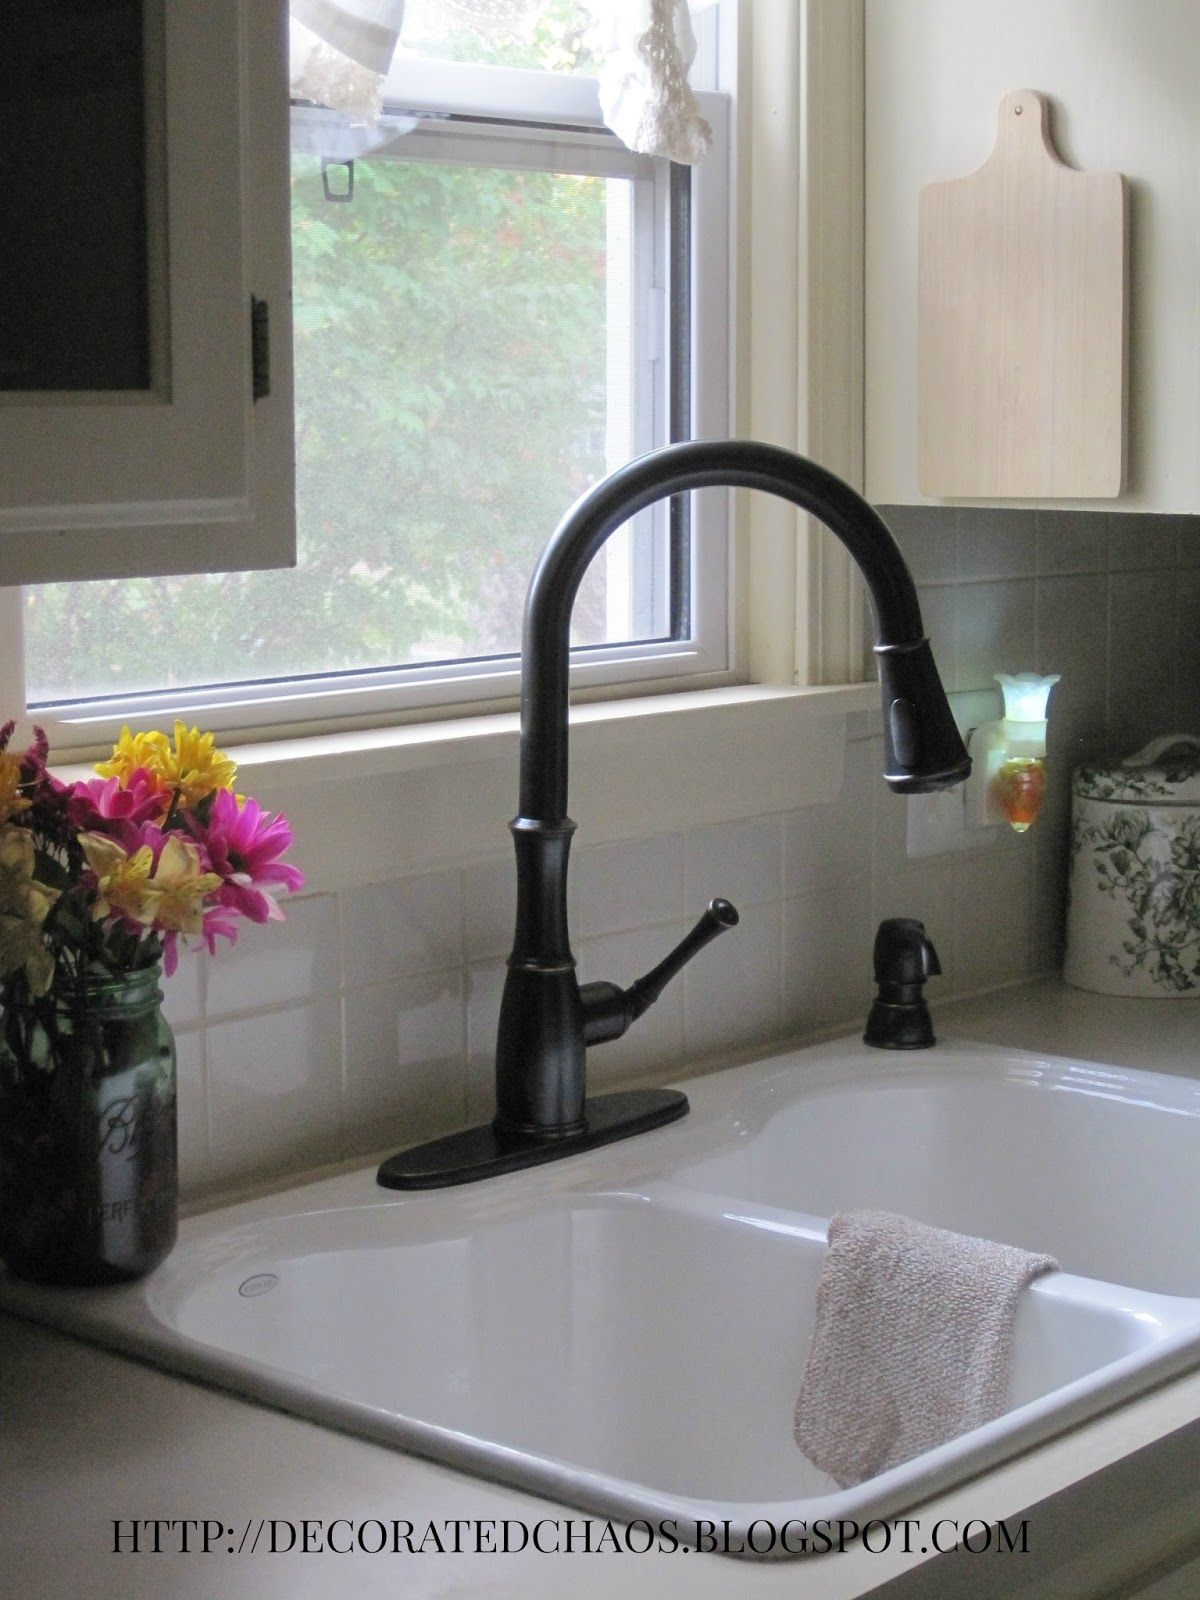 Decorated Chaosnew Pfister faucet in Tuscan Bronze and